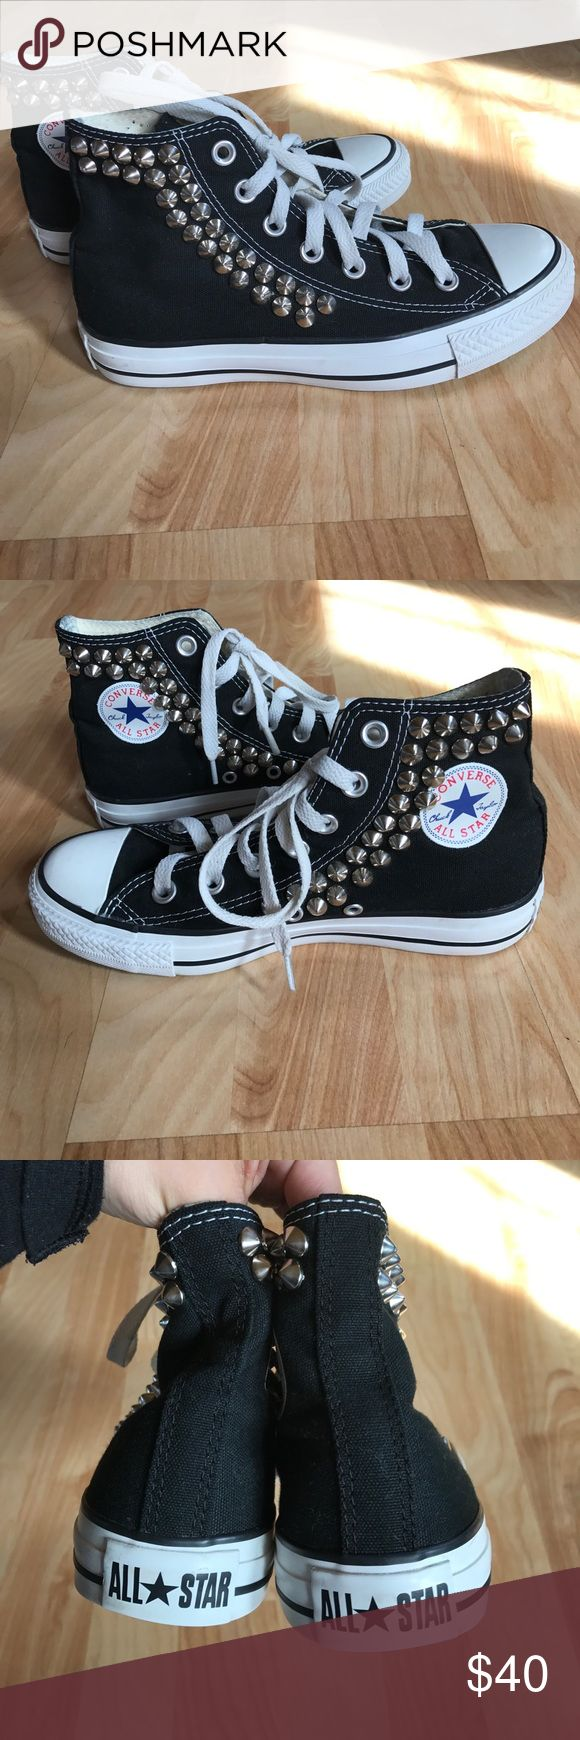 Converse high tops ❤️SALE❤️ I purchased these rare studded converse from freepeople.com and I have not seen them for sale since😊. They are a true women's 6 and measure 9.5 inches from heel to toe and 2.25 inches across from the middle. Be sure to check out my other items for sale😁 I discount on multiple purchases❤️ Converse Shoes Sneakers